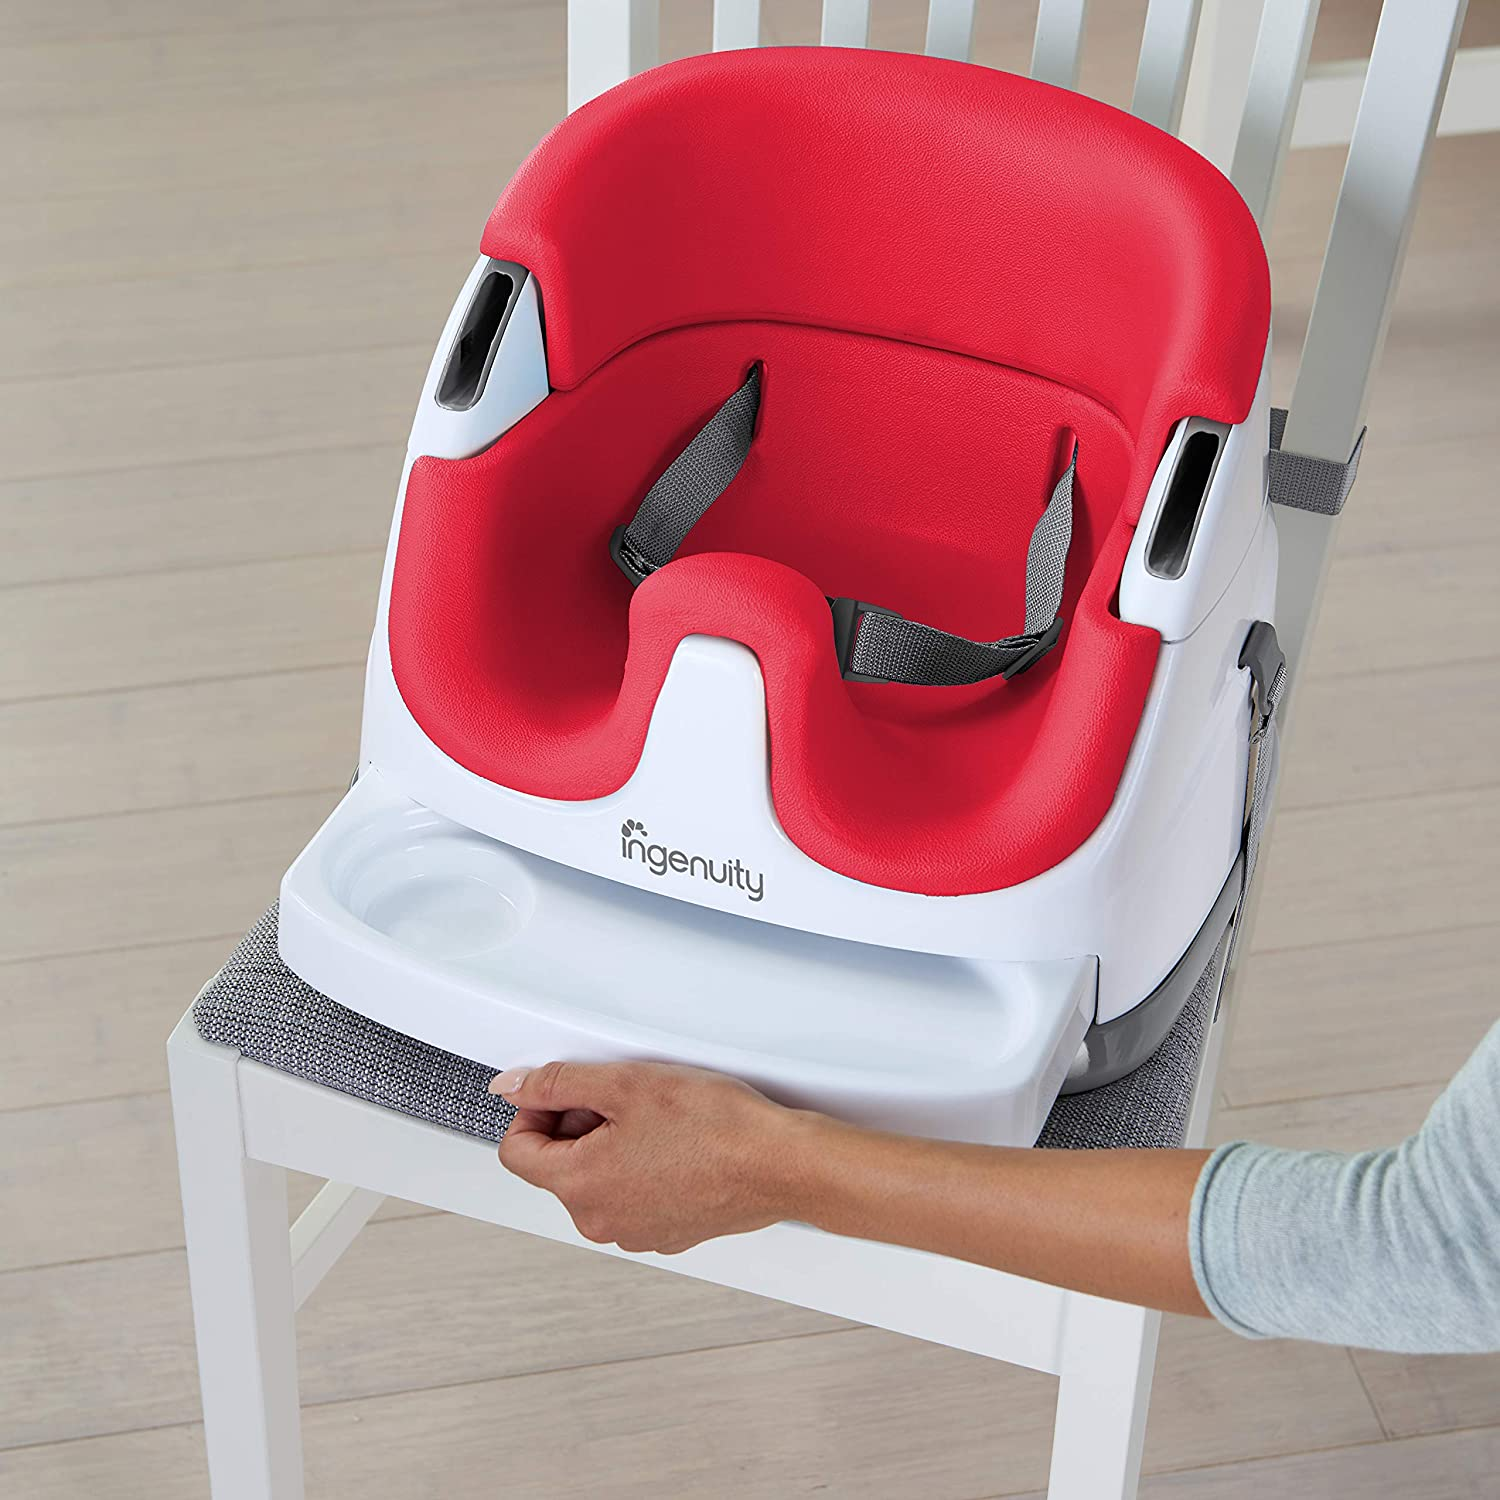 Booster Feeding Seat Cashmere Ingenuity Baby Base 2-in-1 Seat